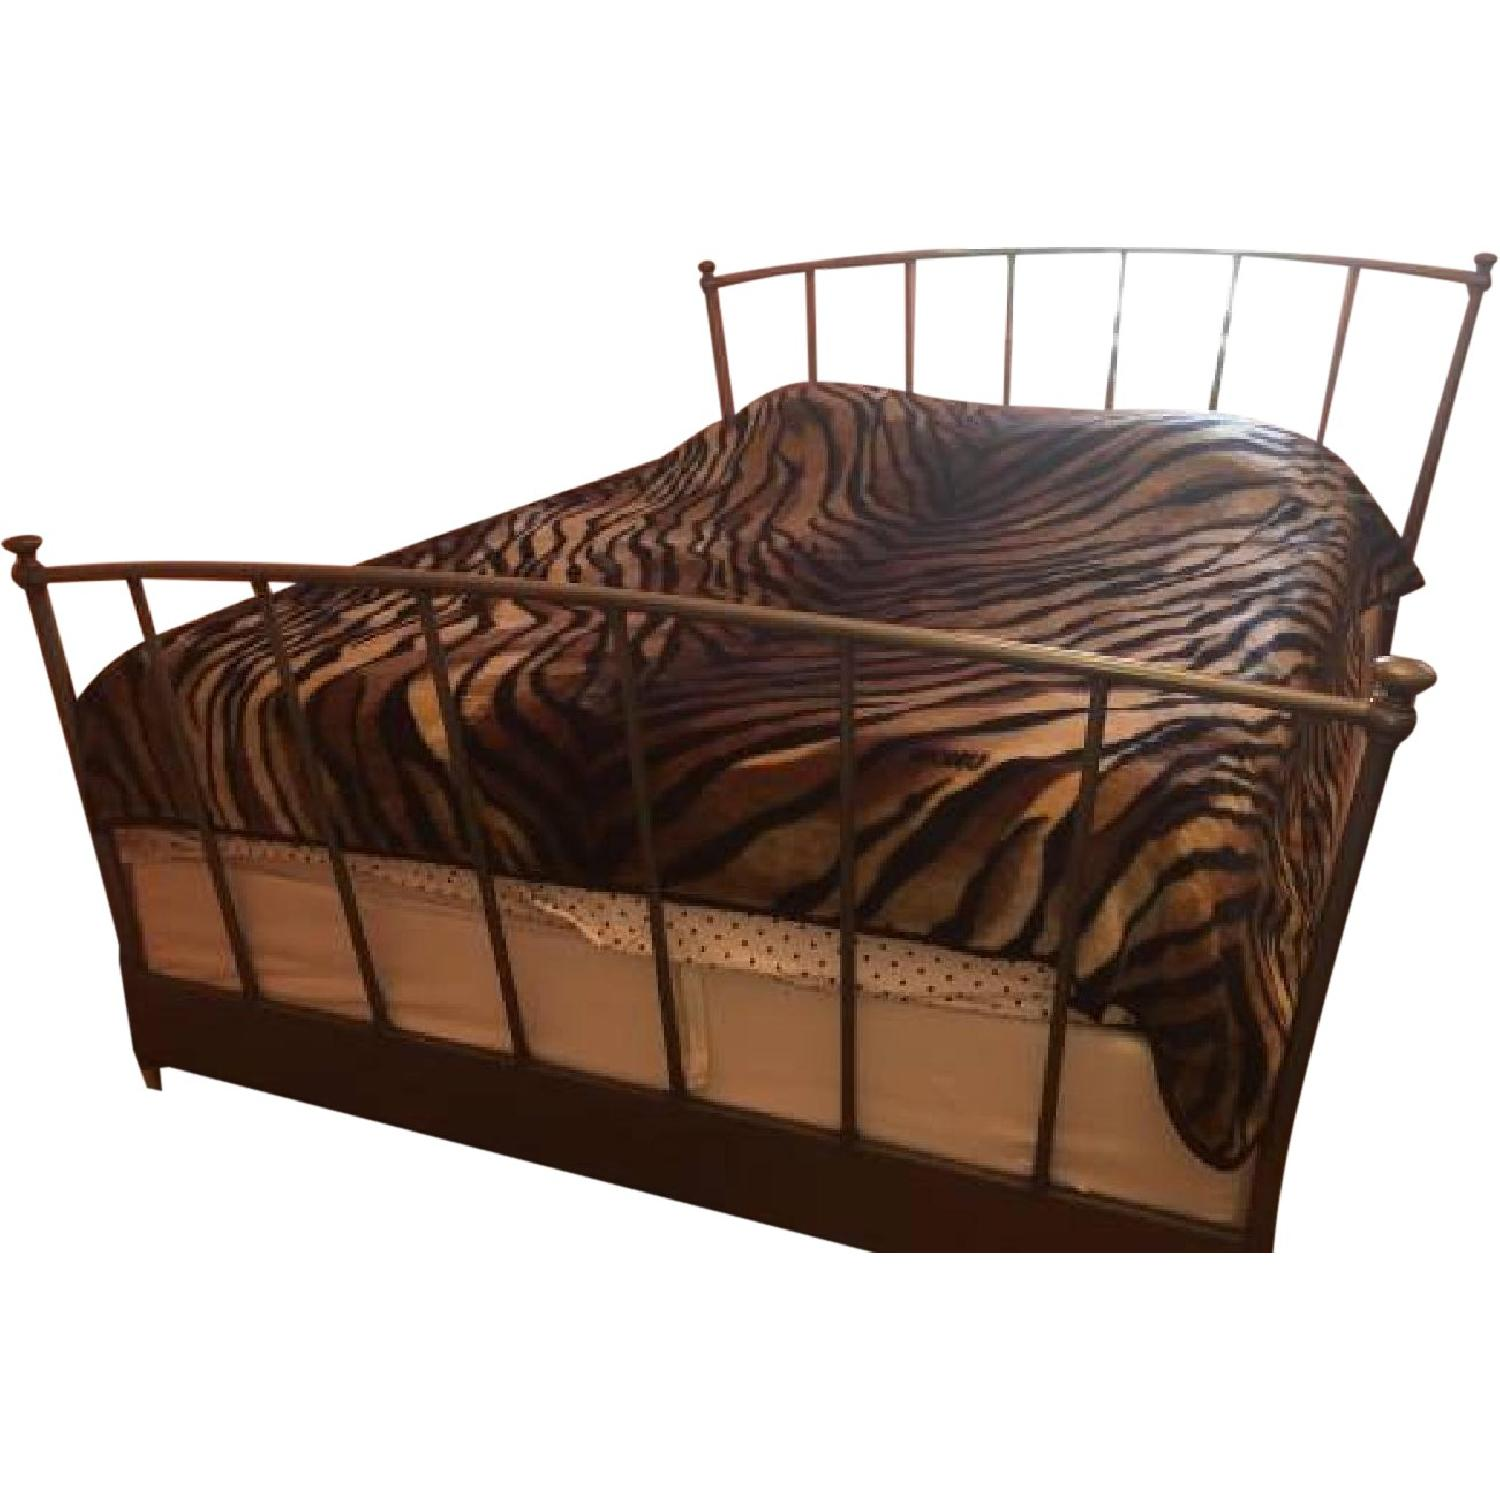 Silver Metal Queen Size Bed Frame